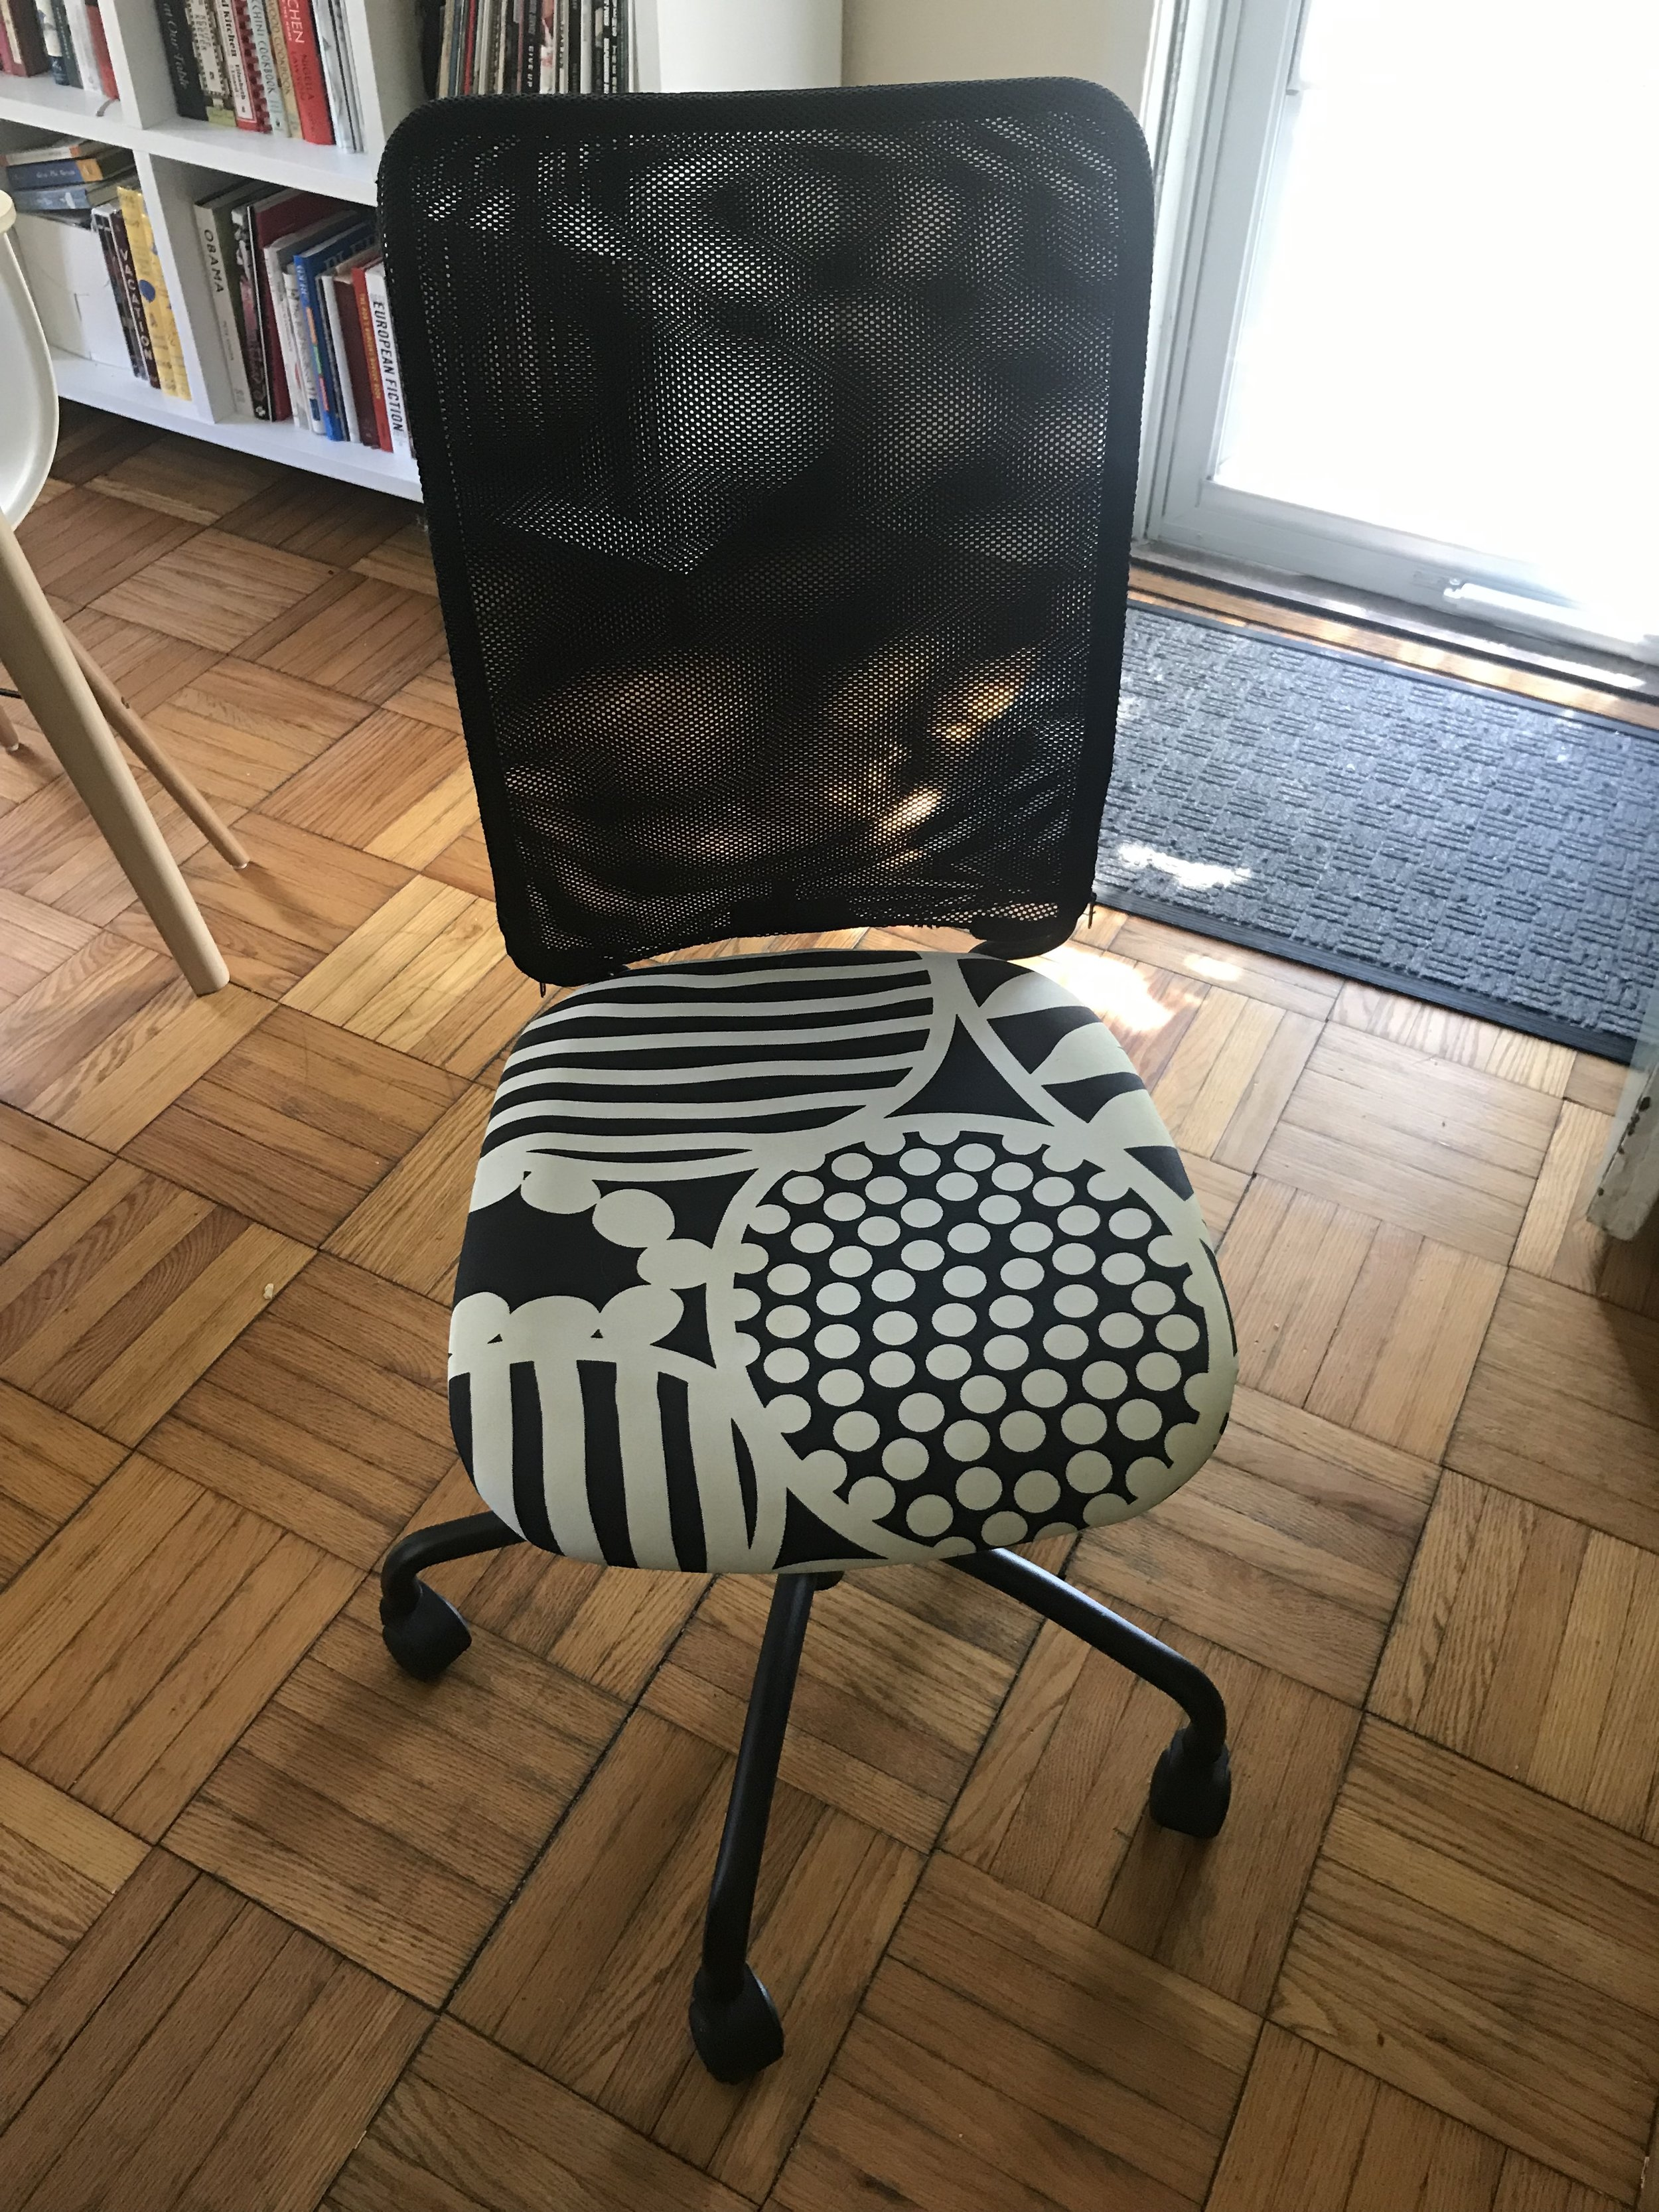 Yet another chair! - It's from IKEA. You can just take it if you want it.